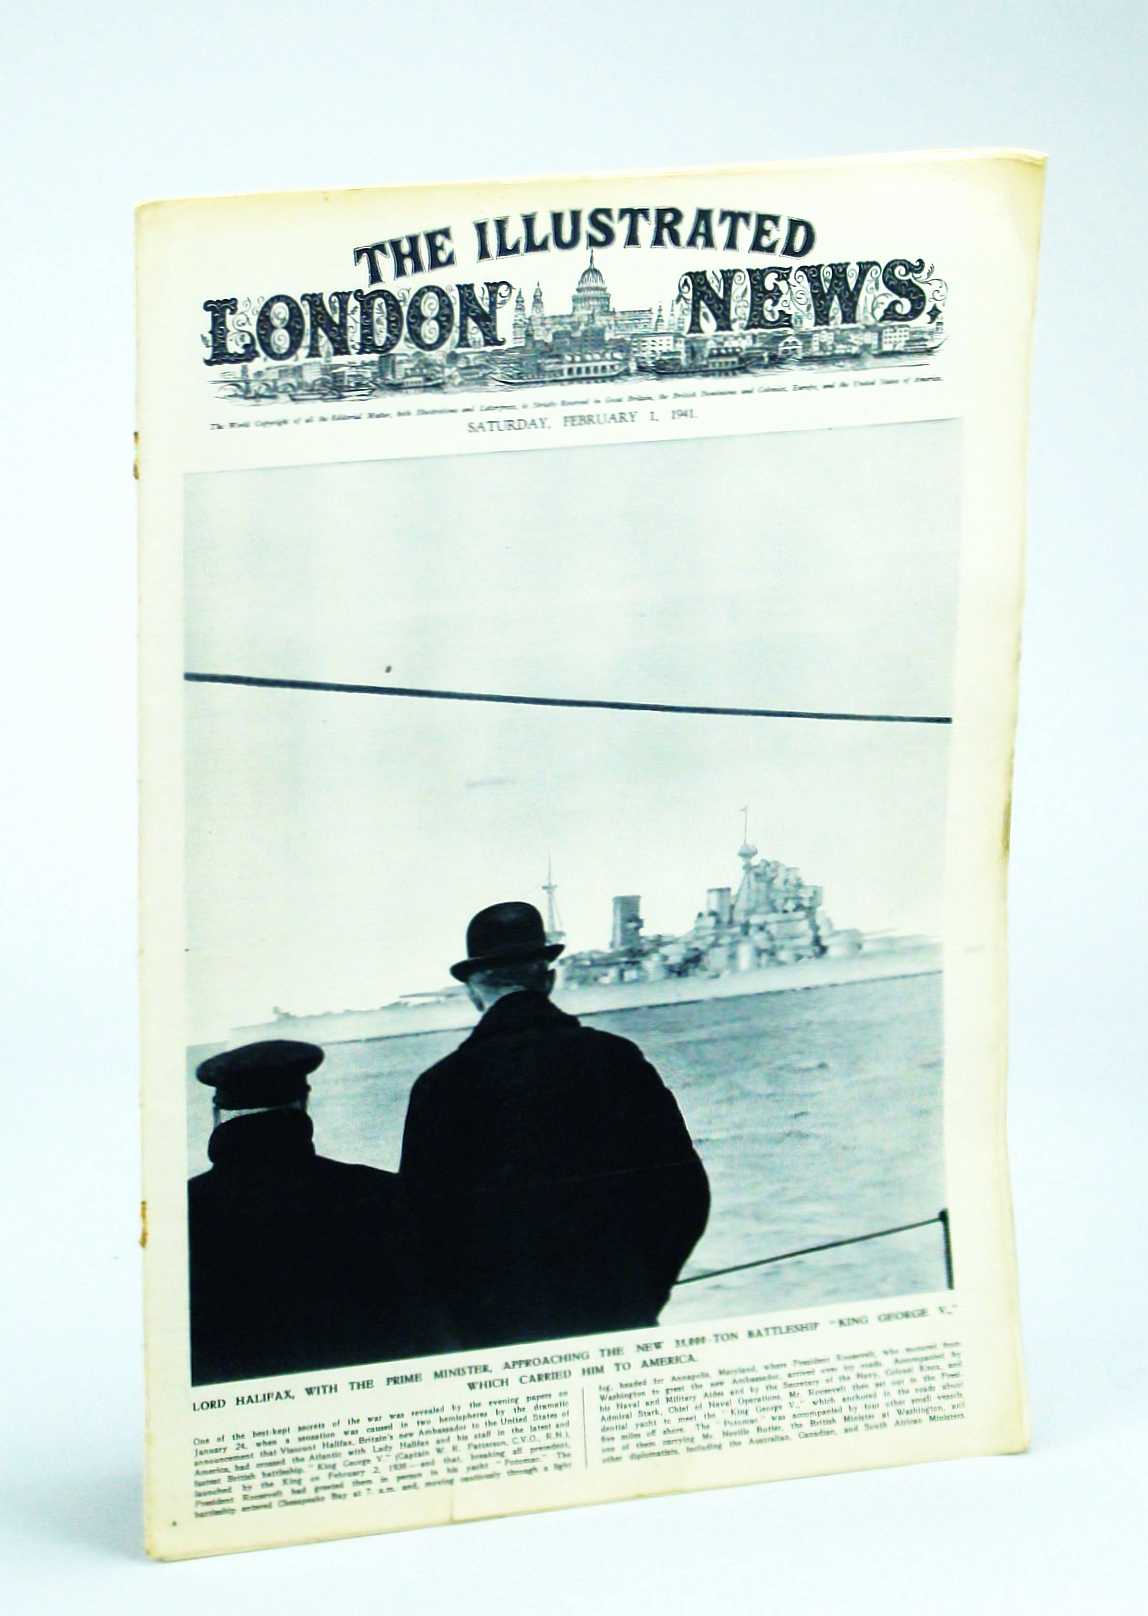 Image for The Illustrated London News, Saturday, February [Feb.] 1, 1941 - First Views of the Capture of Bardia